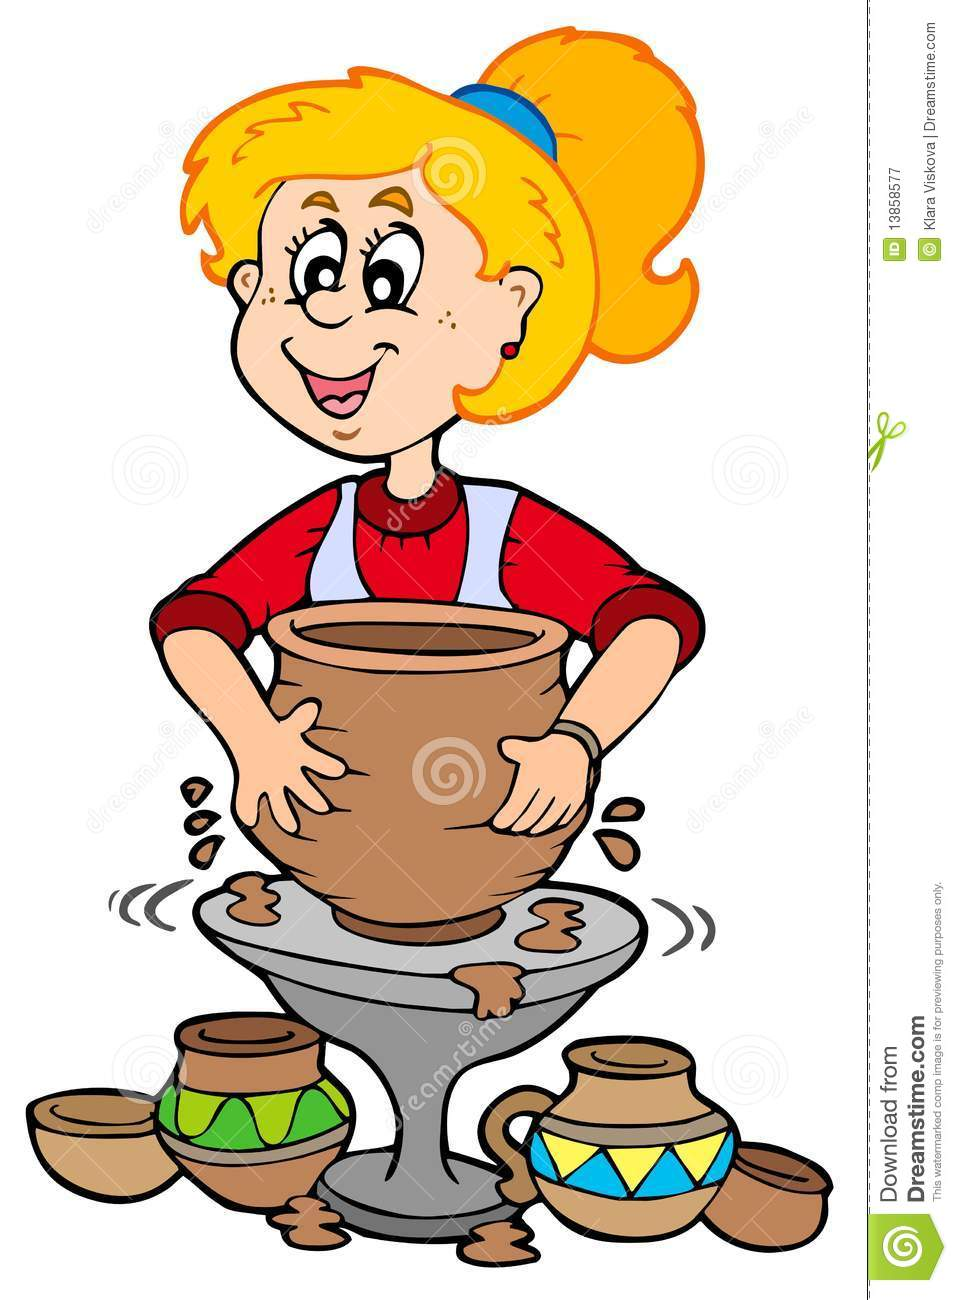 Royalty Free Stock Photography Cartoon Pottery Girl Image13858577 on orange juice pitcher